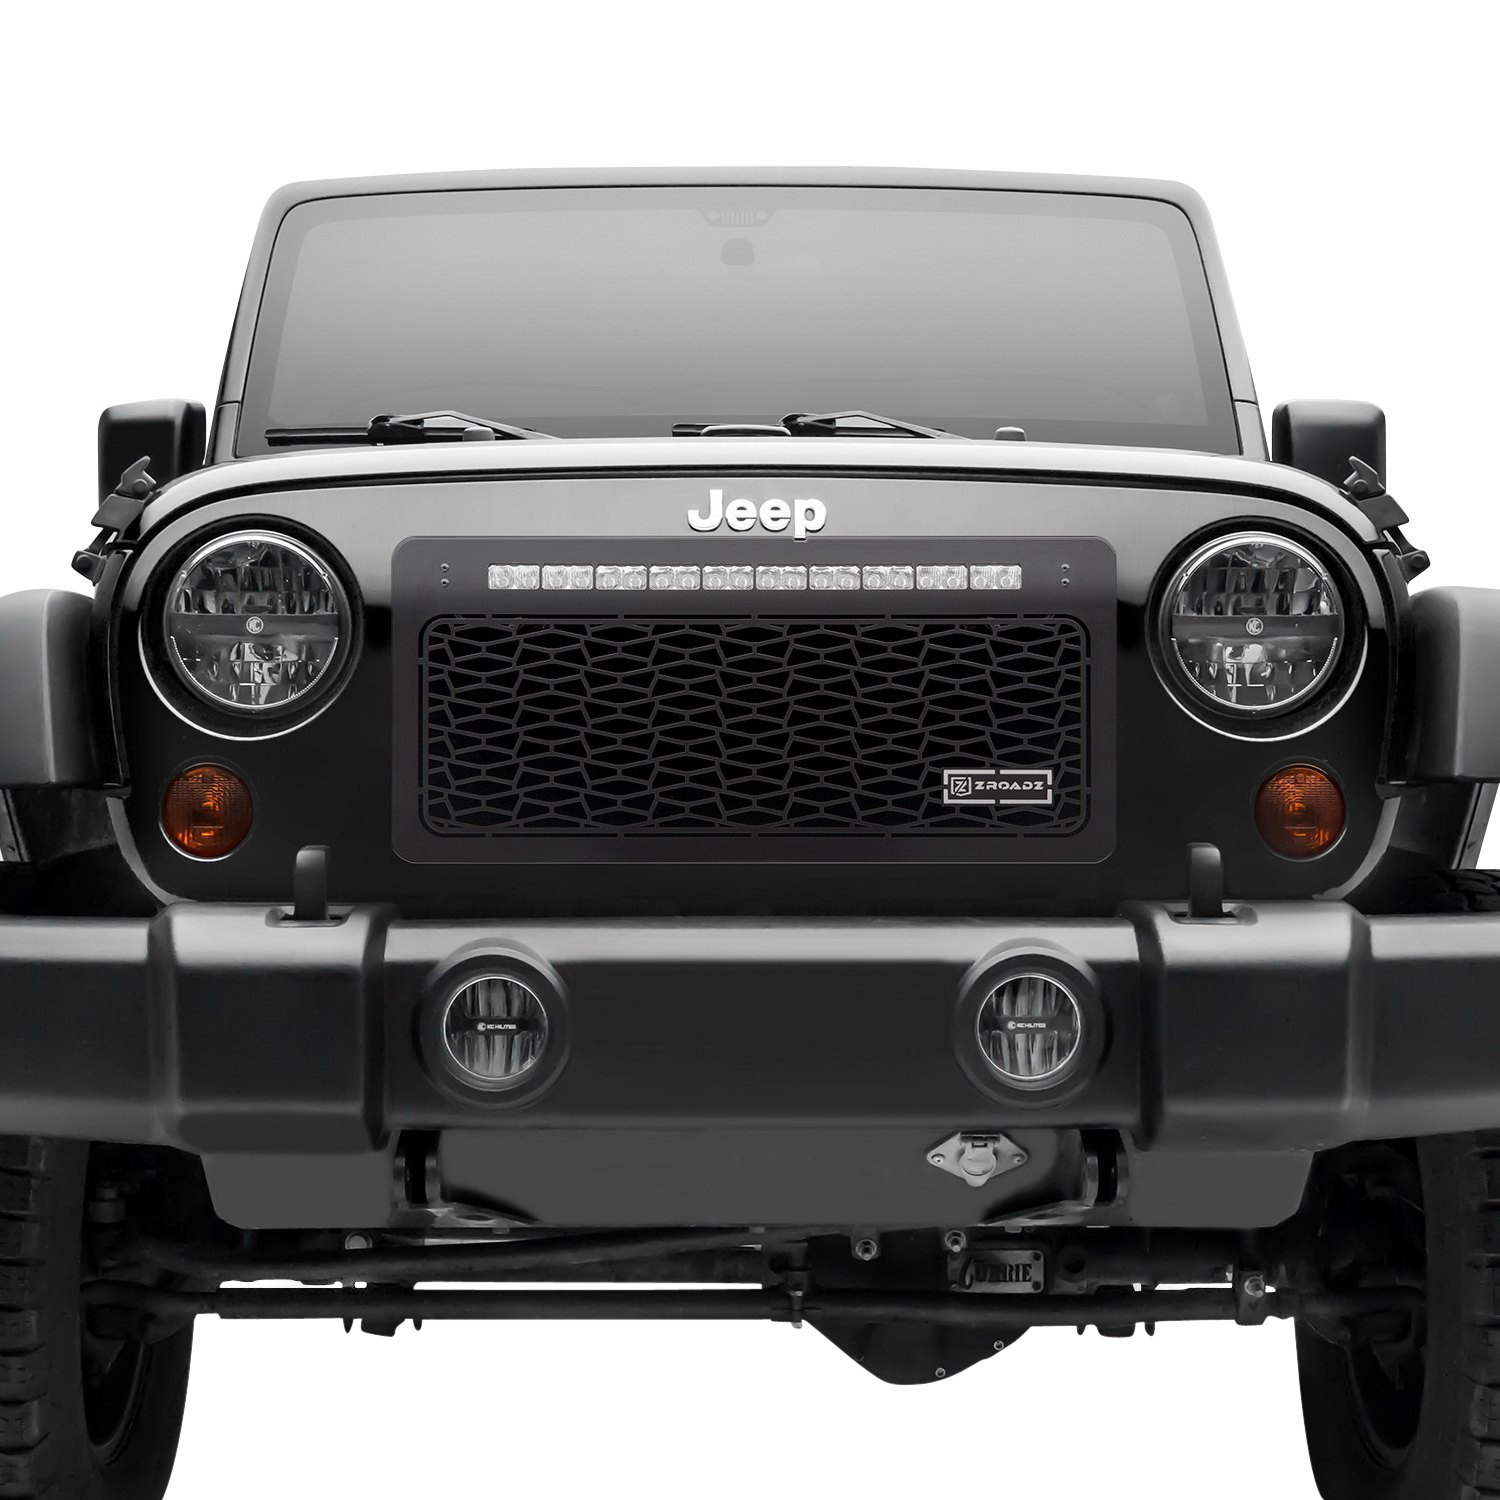 Jeep Wrangler 2007 ZROADZ Series LED Black CNC